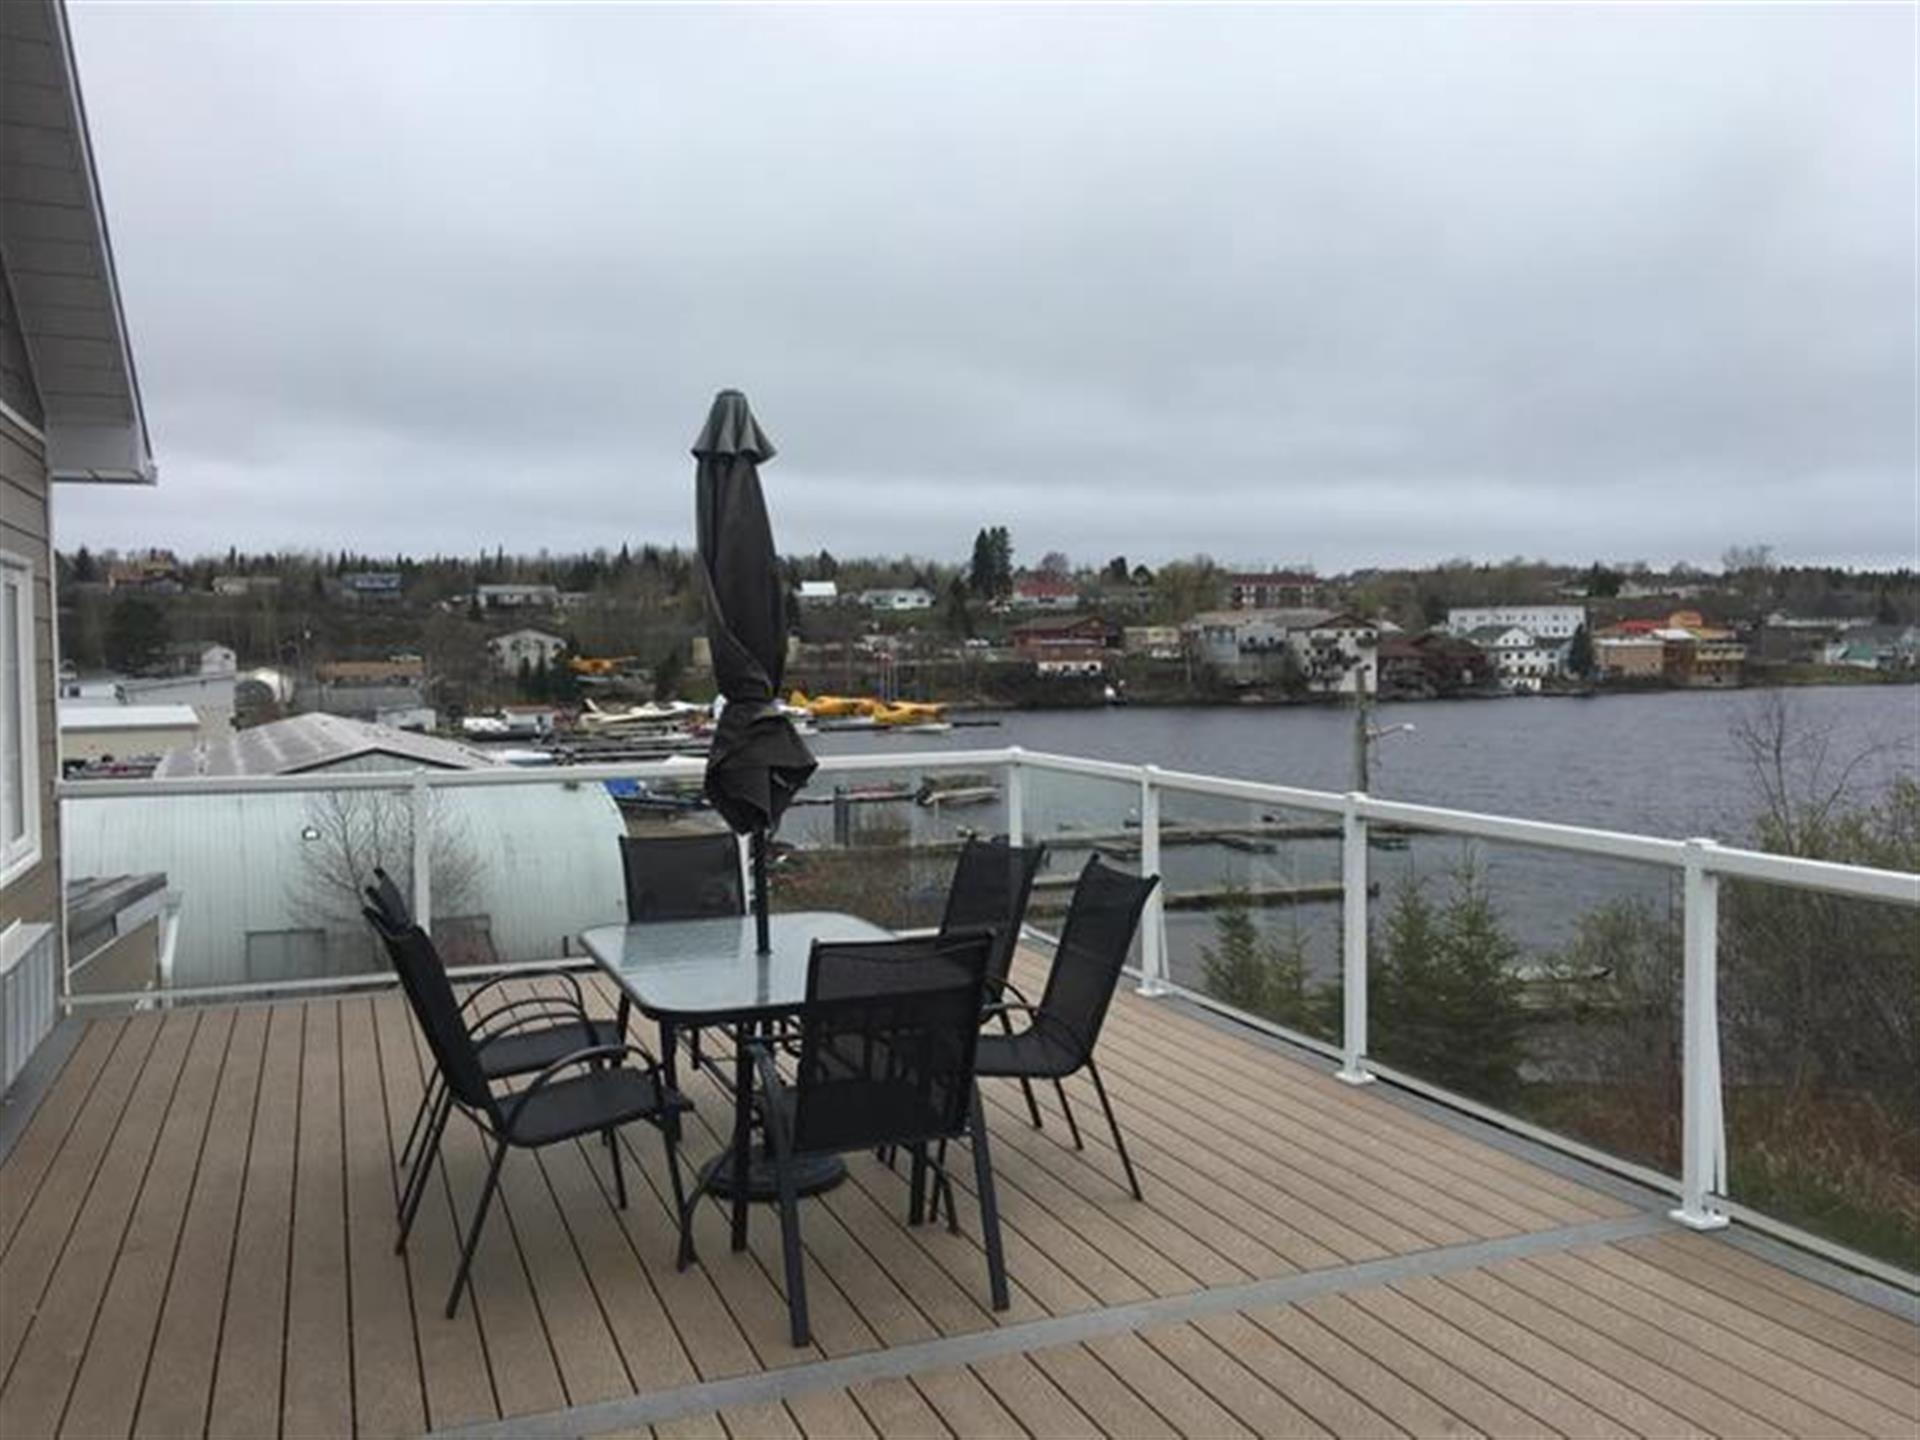 Deck area and view